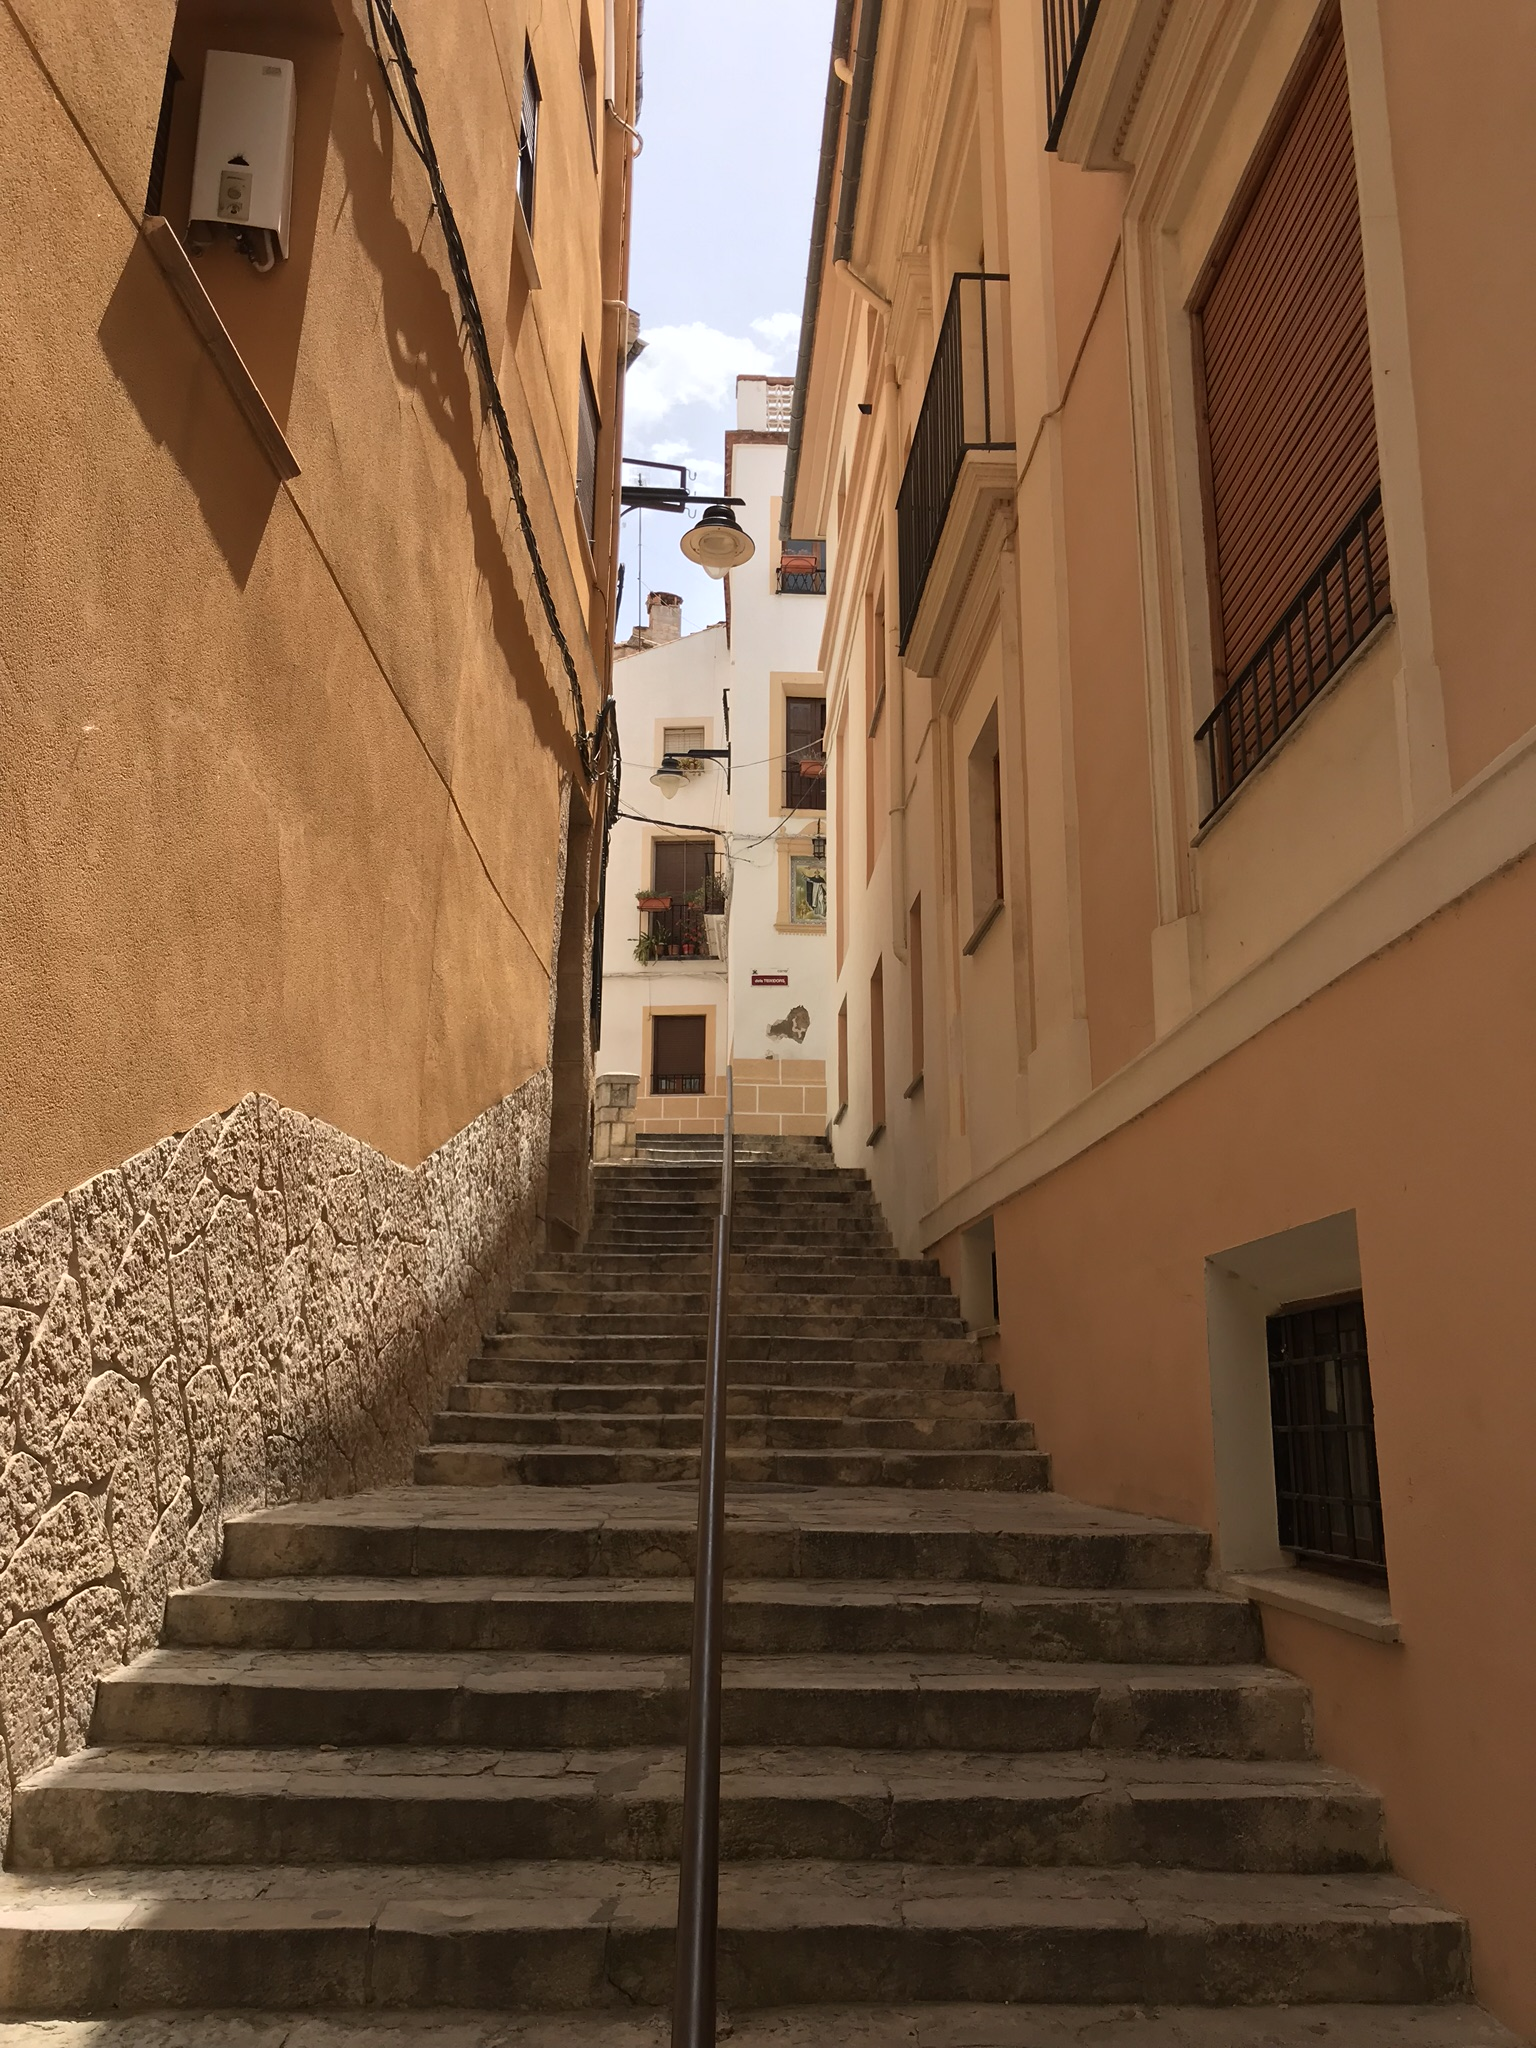 Spain 2018 Day 3 - Another stairway